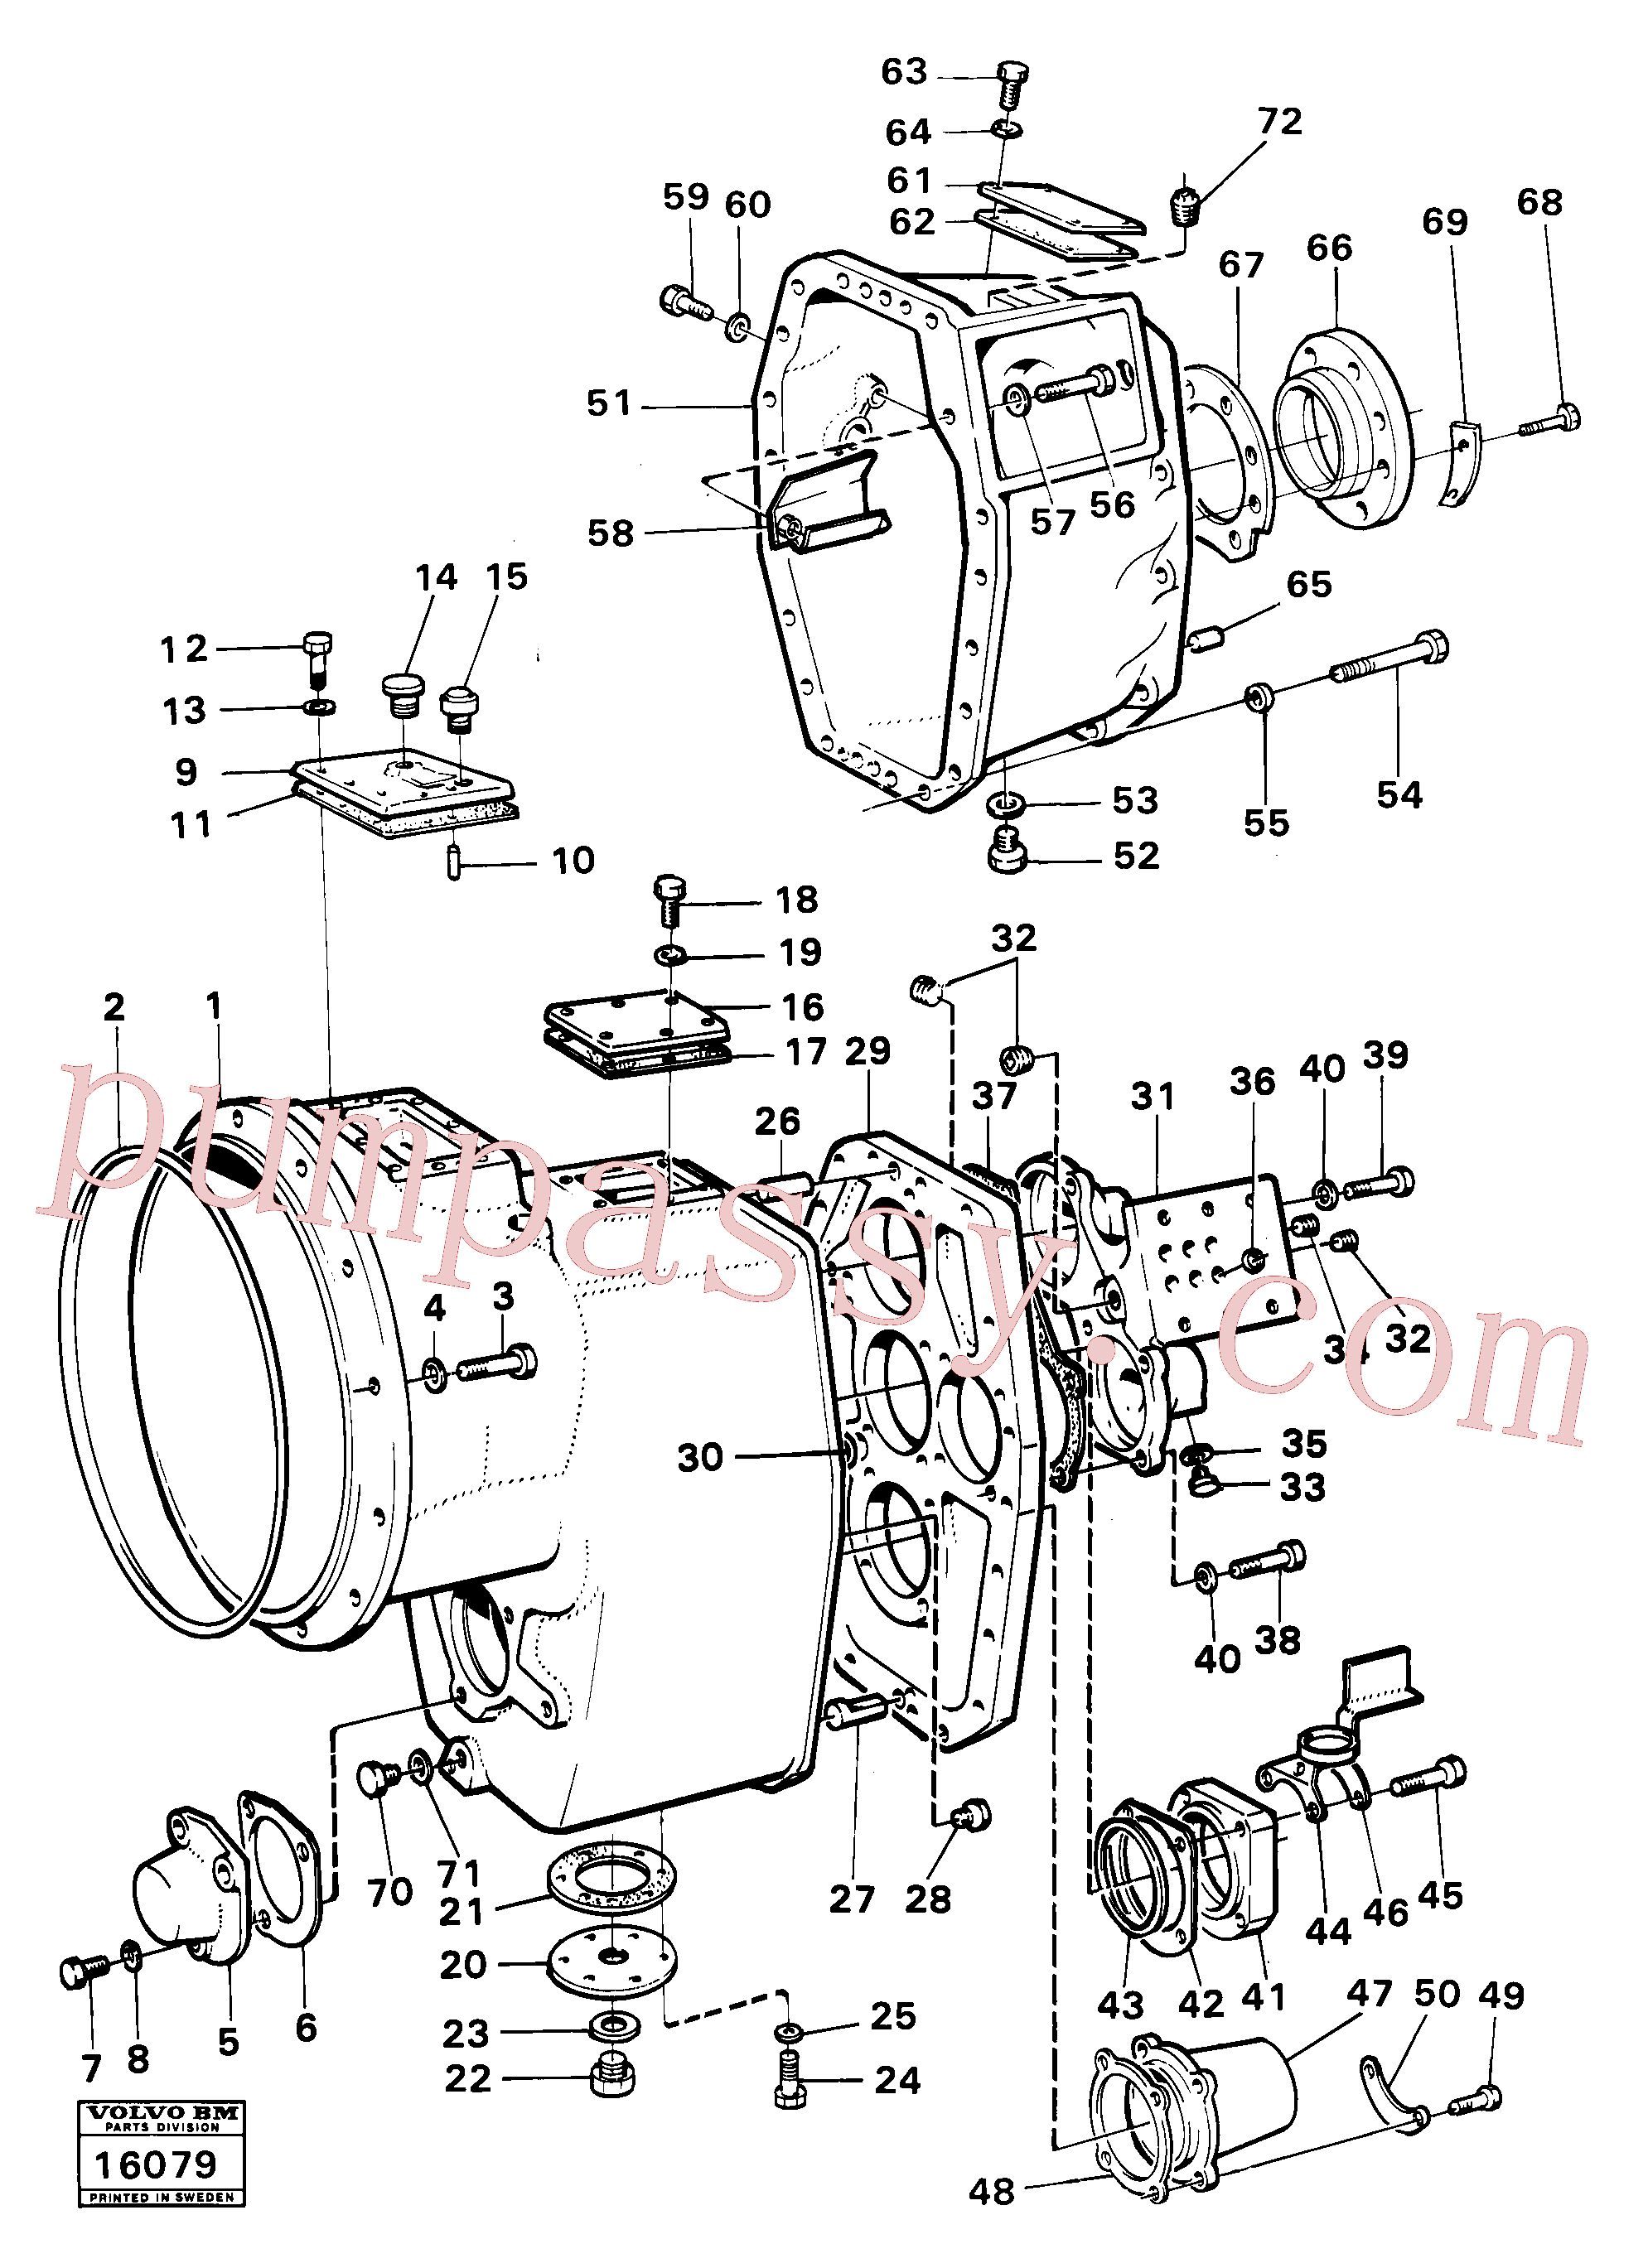 VOE940115 for Volvo Housing,covers and boltings(16079 assembly)